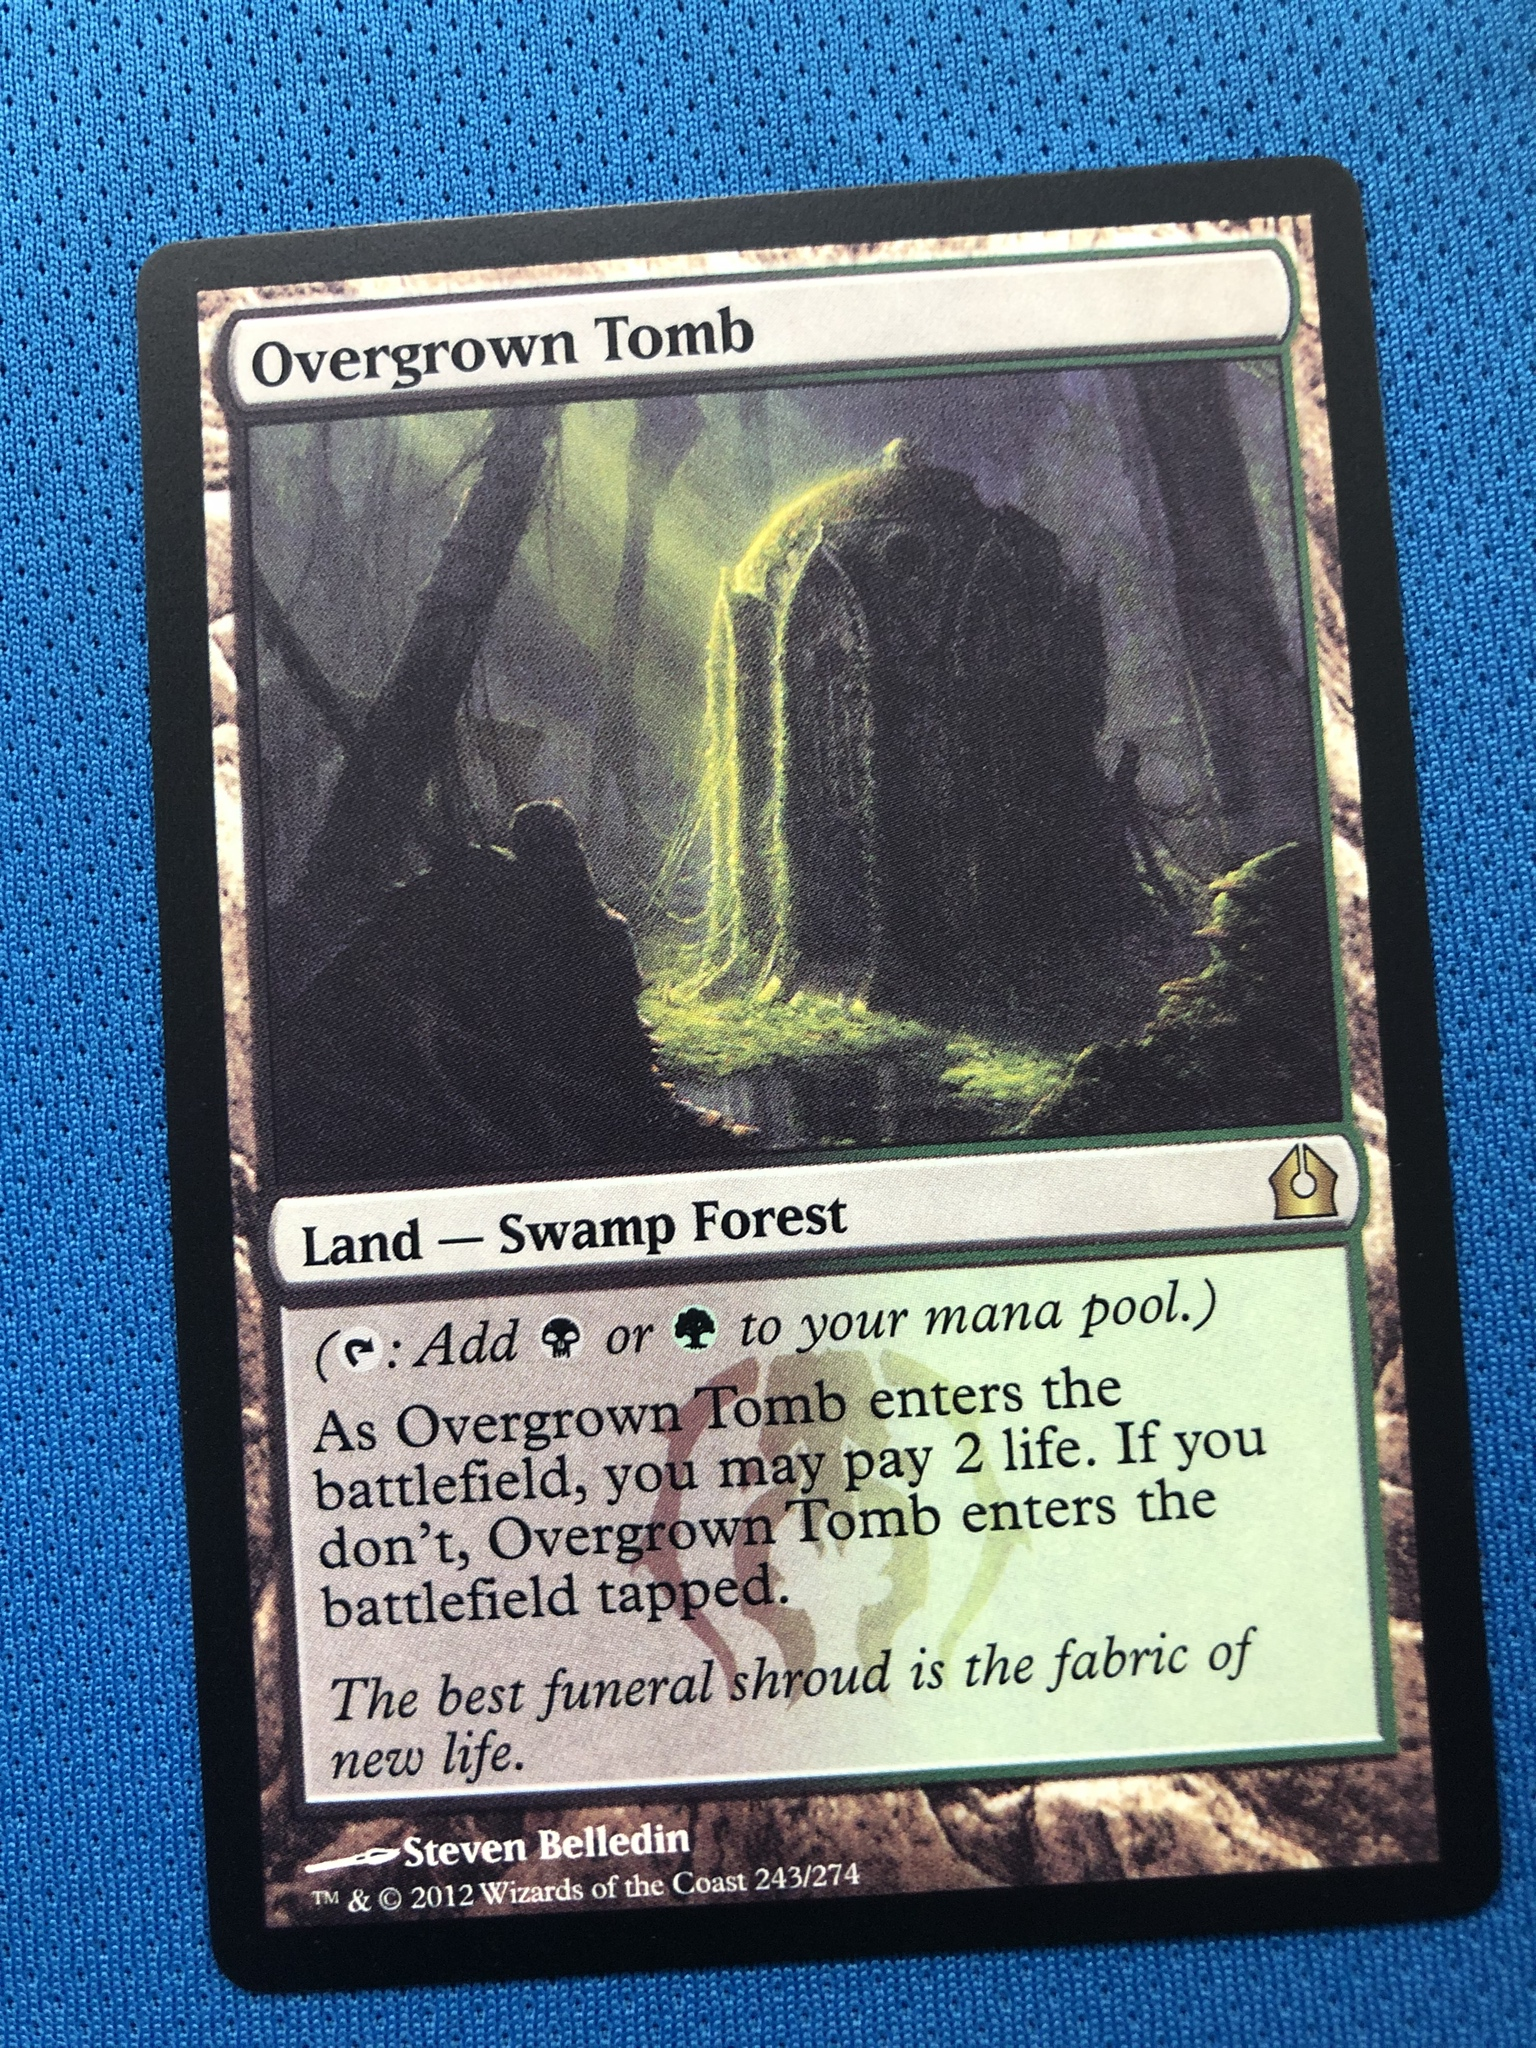 Overgrown Tomb 	 RTR (Return To Ravnica) Magician ProxyKing 8.0 VIP The Proxy Cards To Gathering Every Single Mg Card.